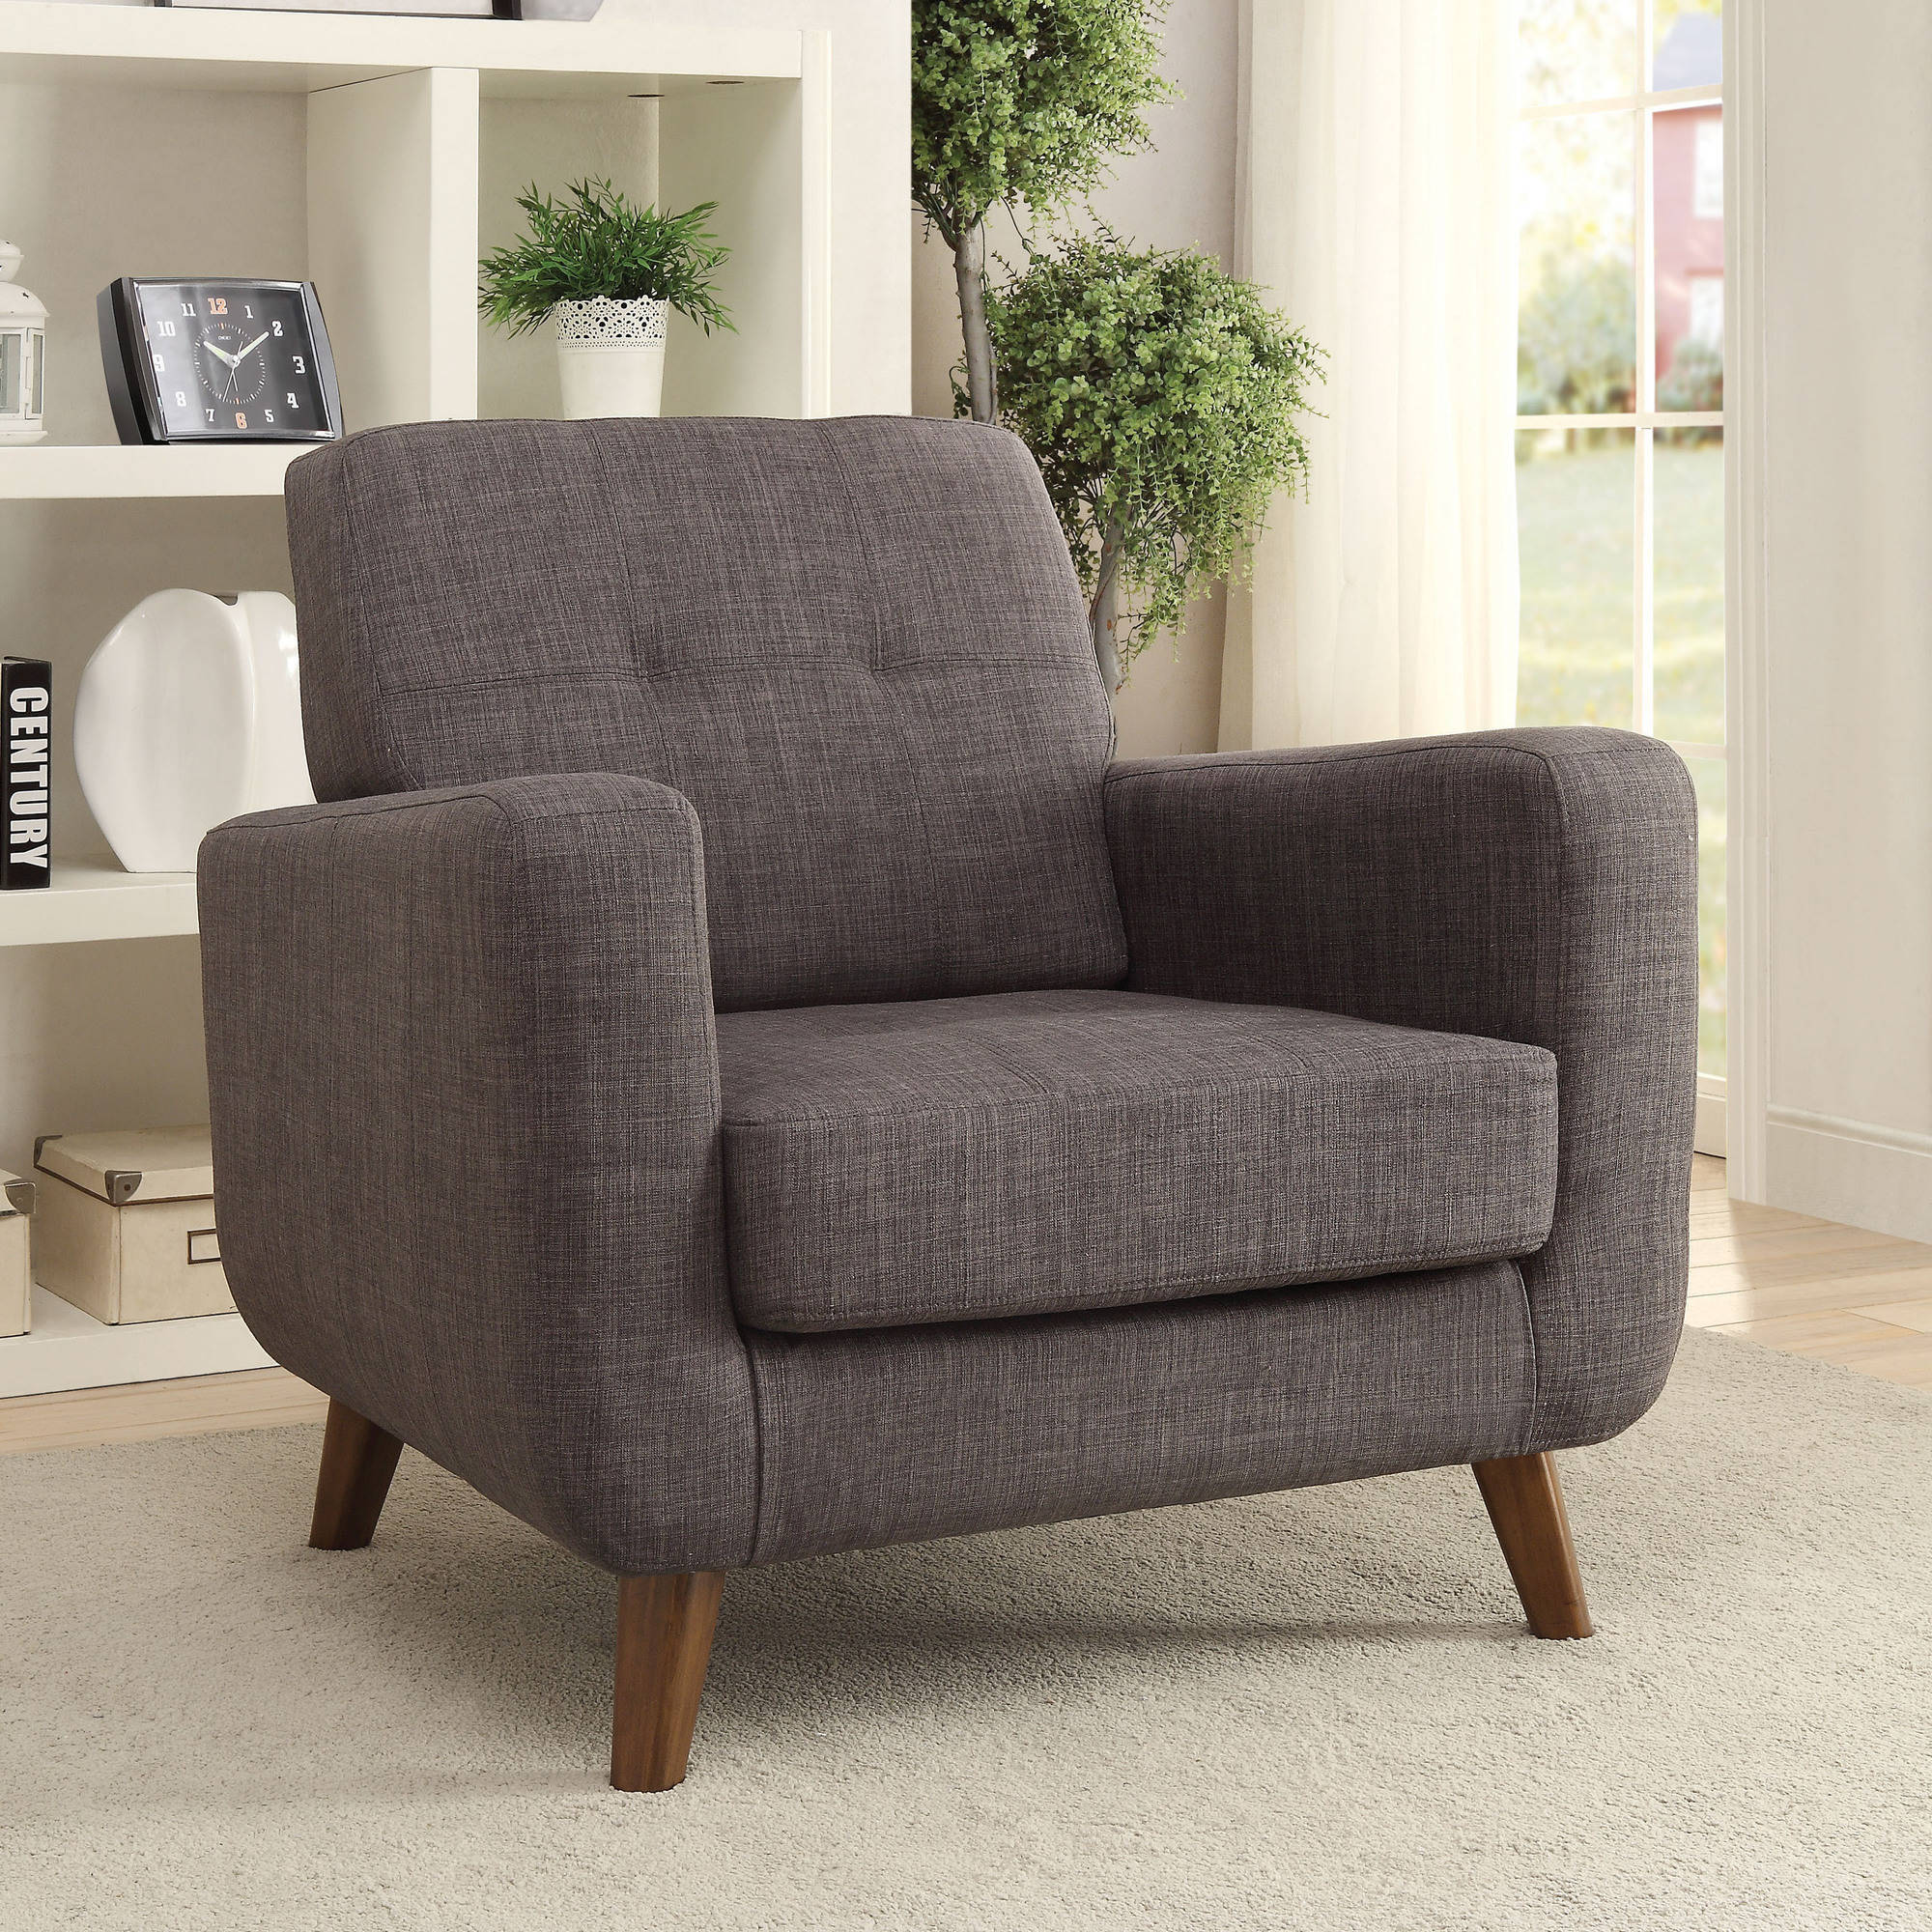 Coaster Mid century Modern Accent Chair Walmart